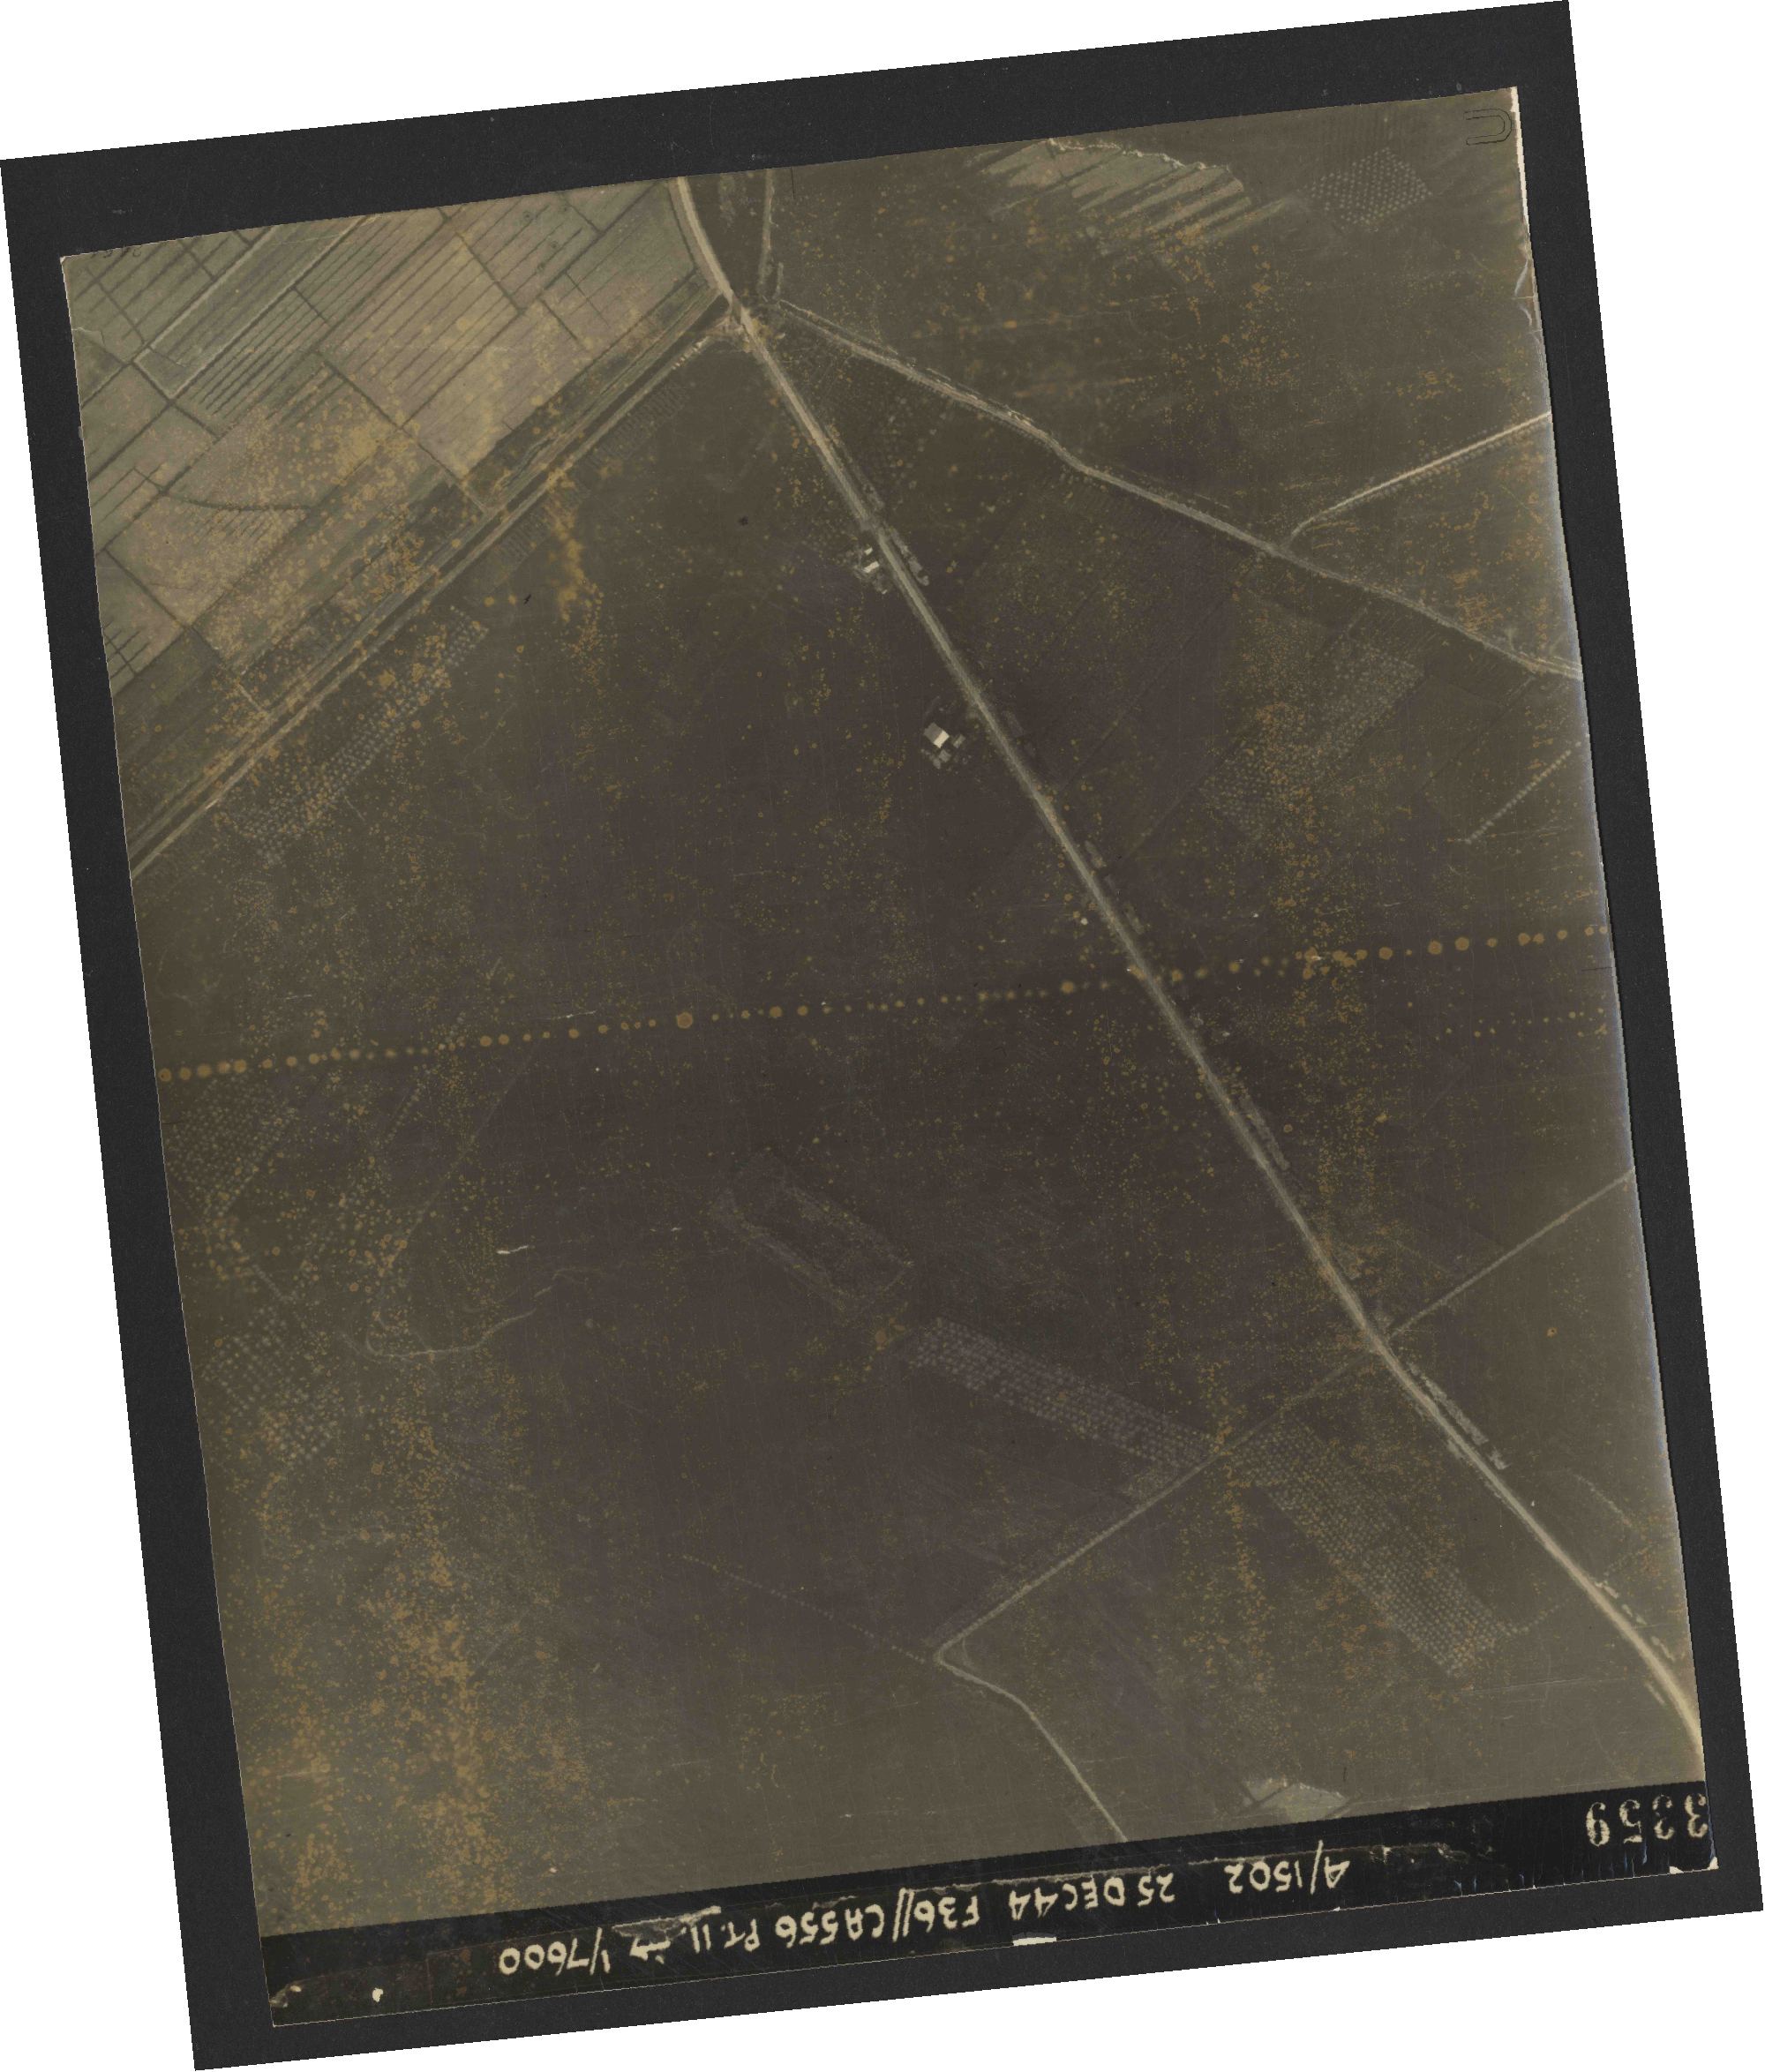 Collection RAF aerial photos 1940-1945 - flight 306, run 12, photo 3359